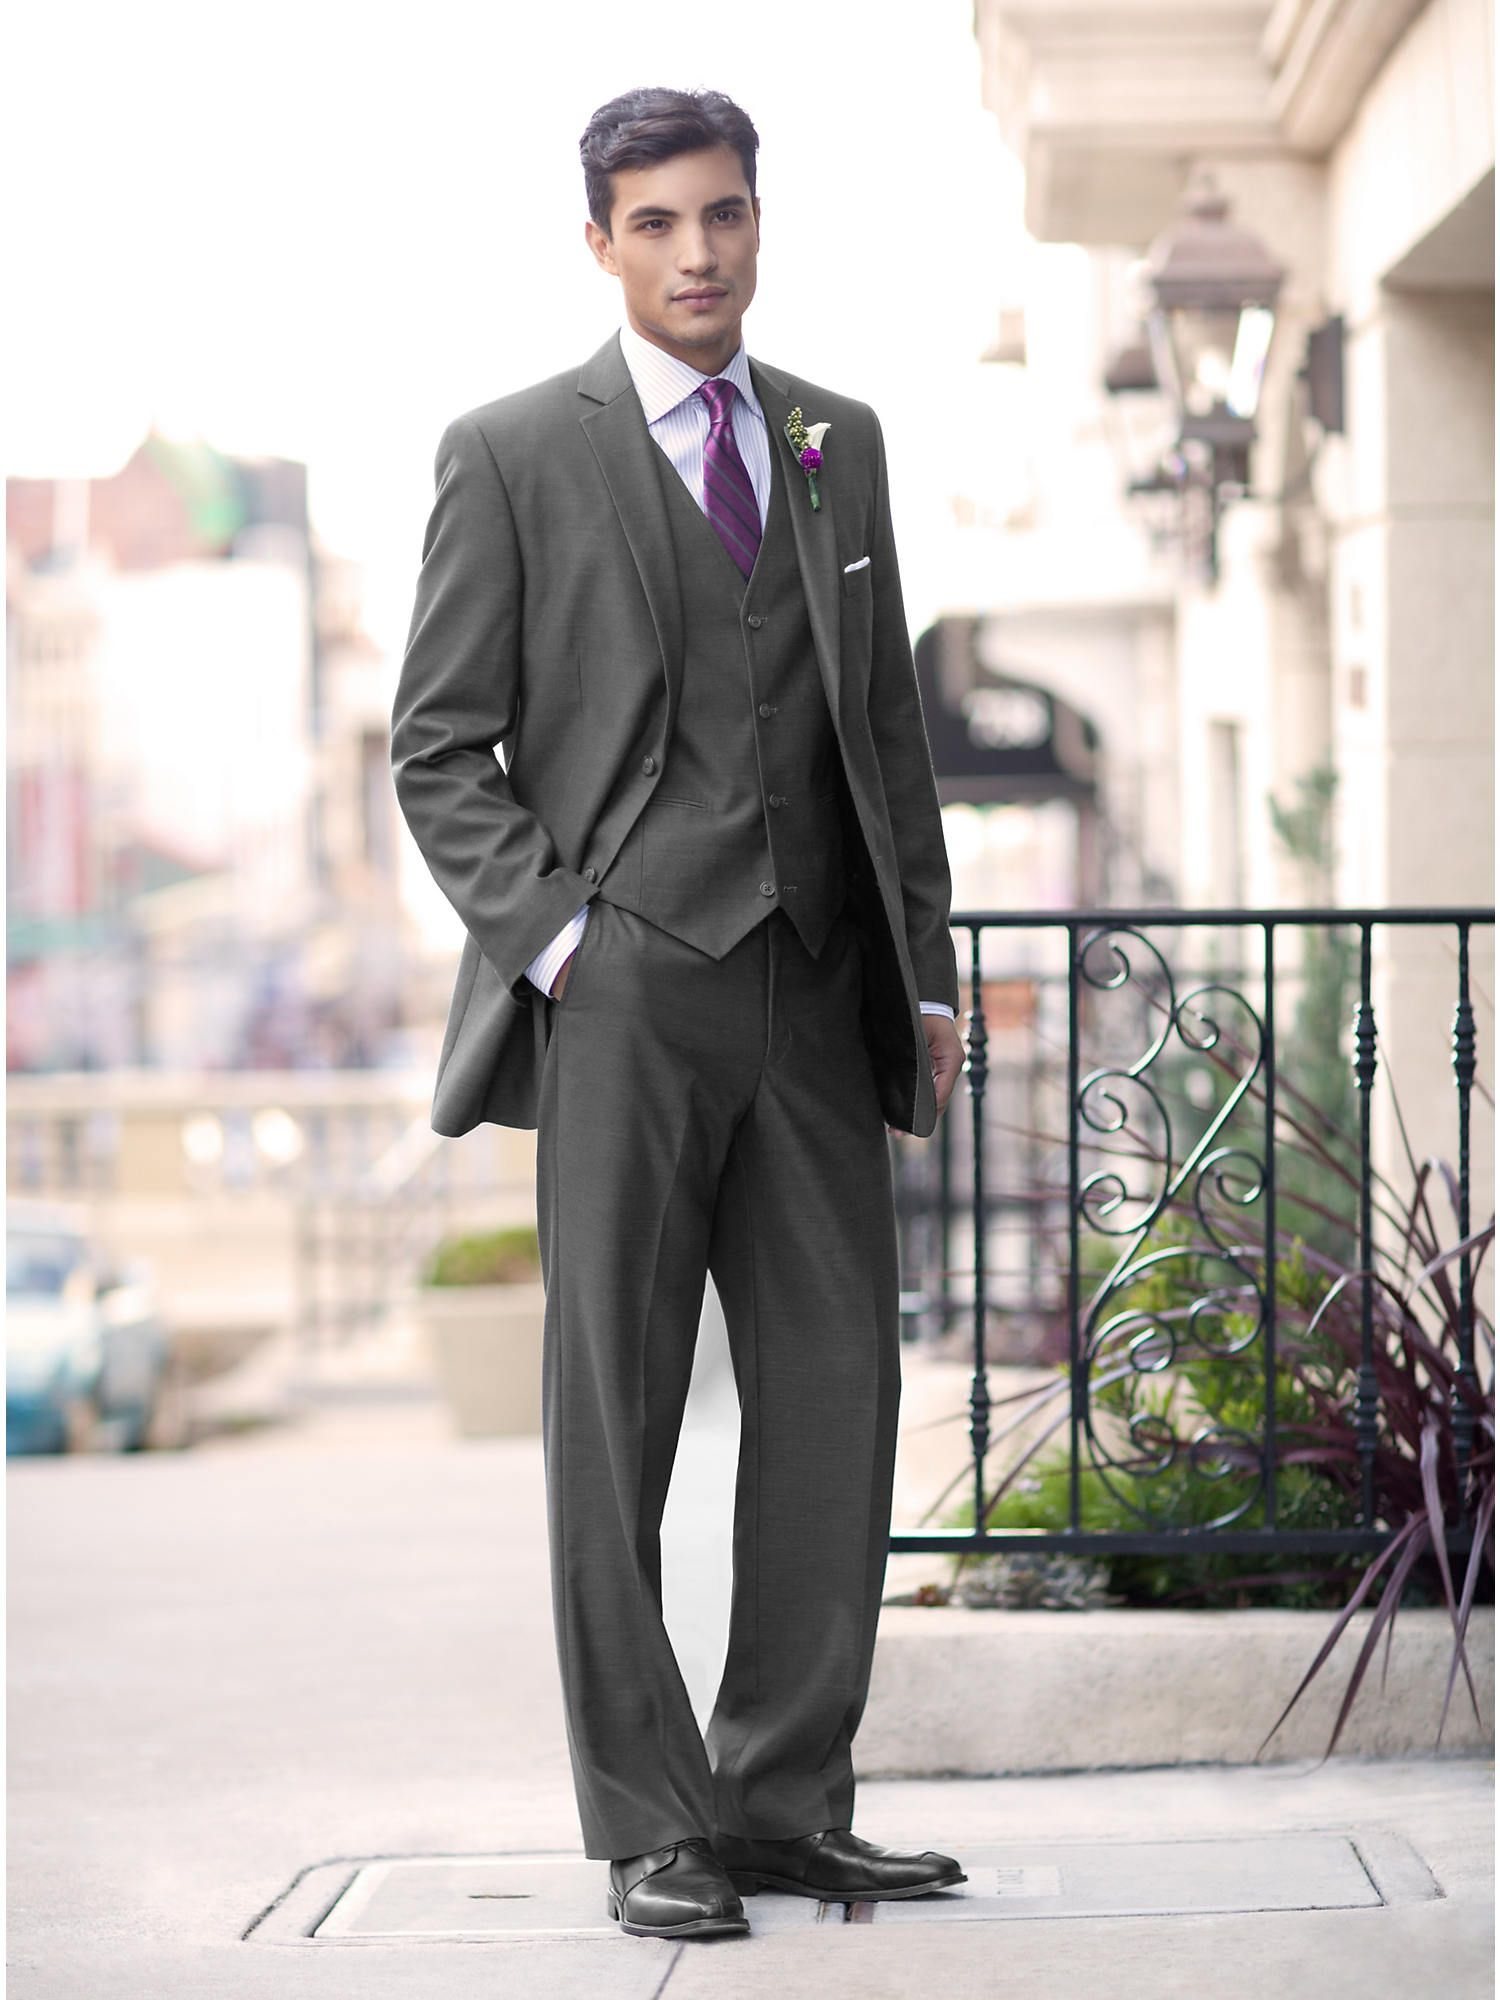 Wedding Party Gray Vested Suit Men S Wearhouse Wedding Suits Men Grey Suit Vest Grey Suit Wedding